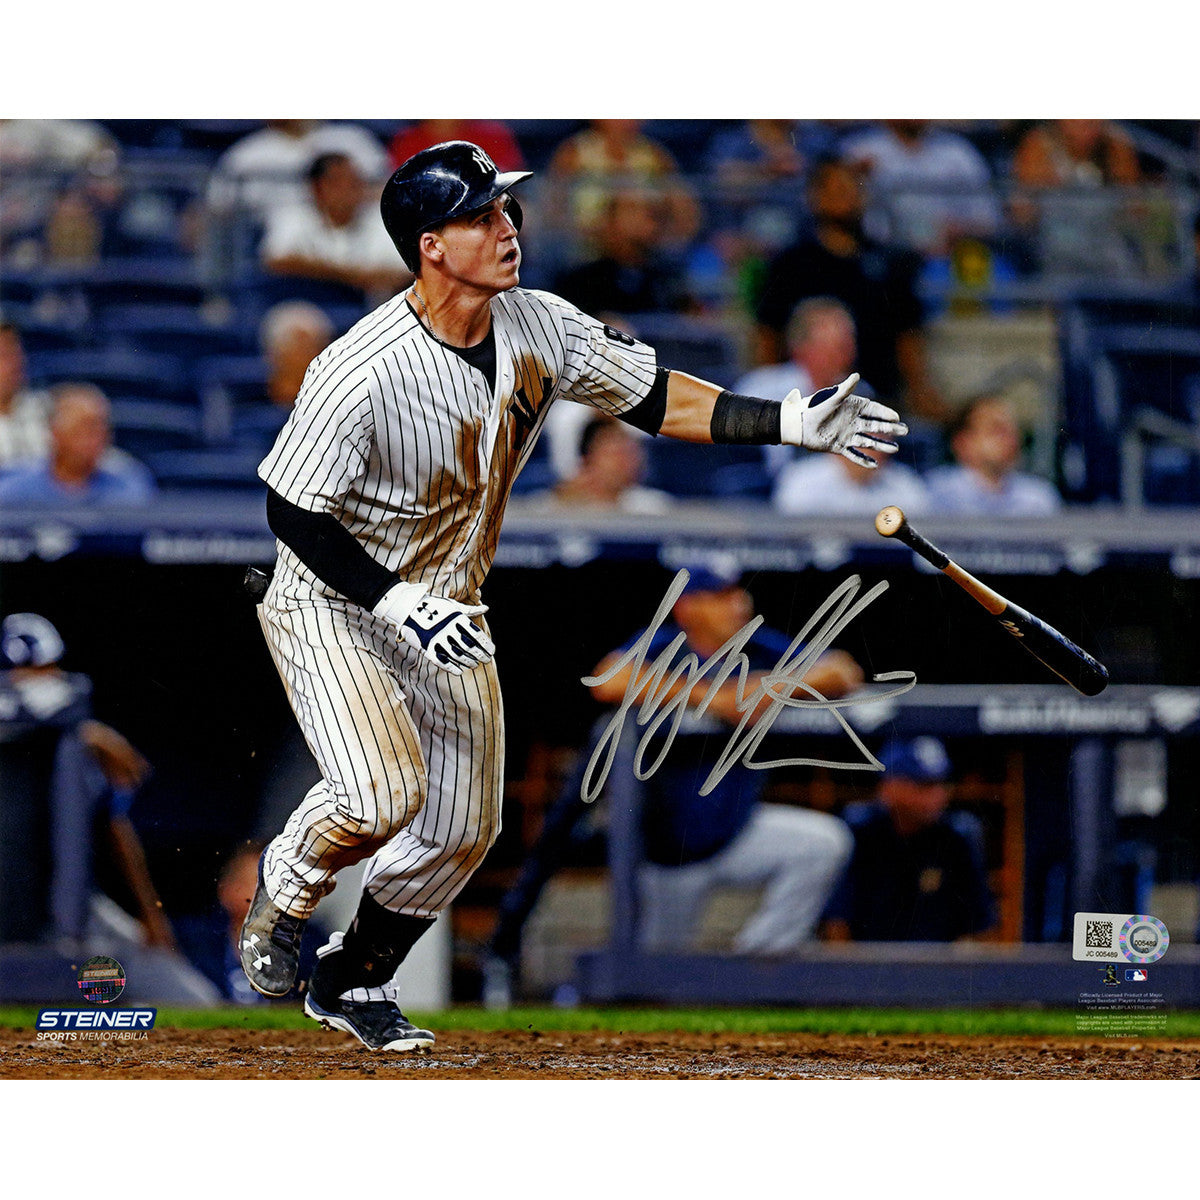 Tyler Austin Walk-Off 8x10 Signed Photo